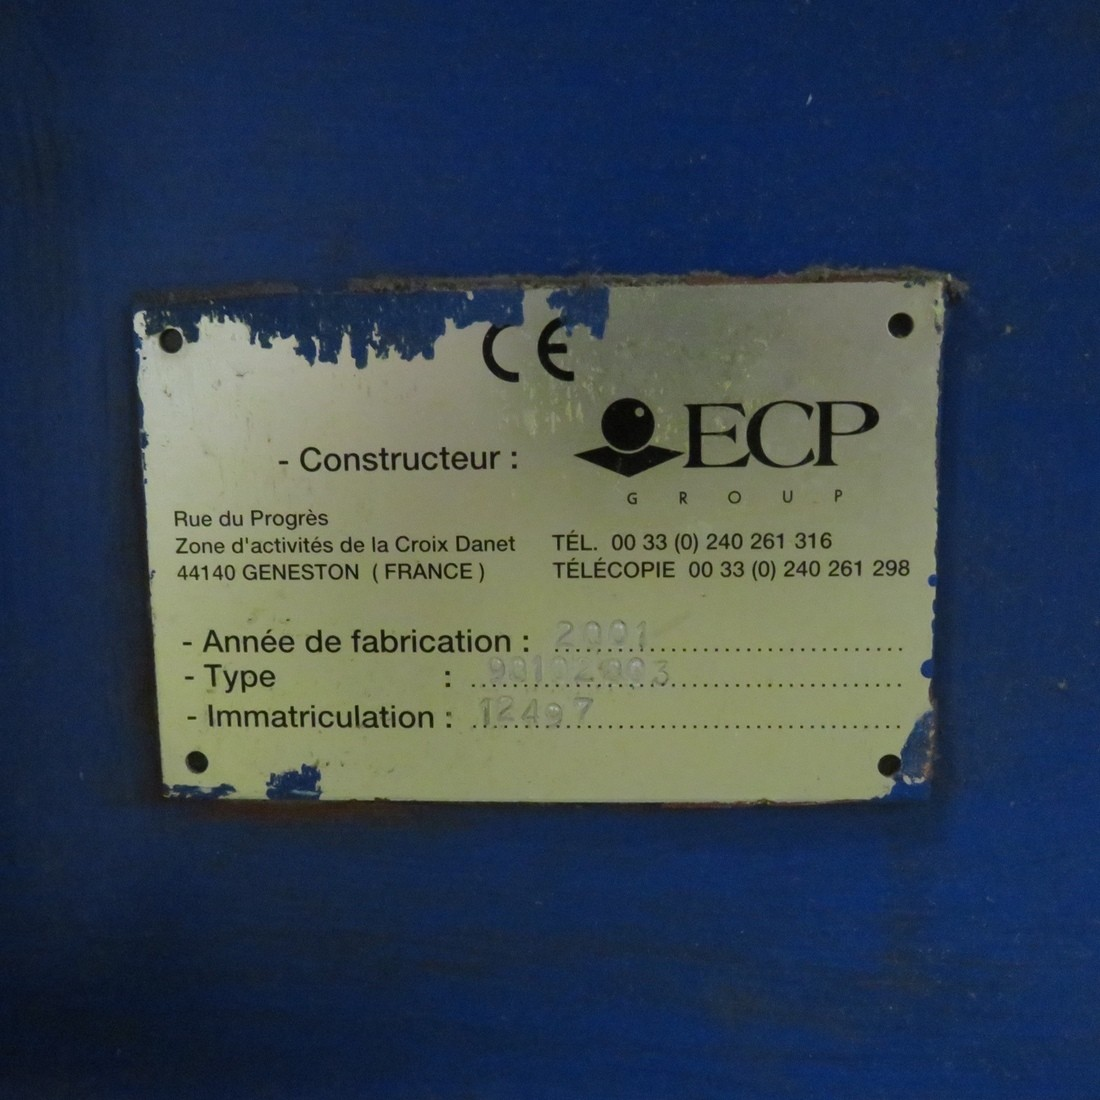 R6BK789 Mild steel ECP Shredder - Type 9010 2003 - Hp4